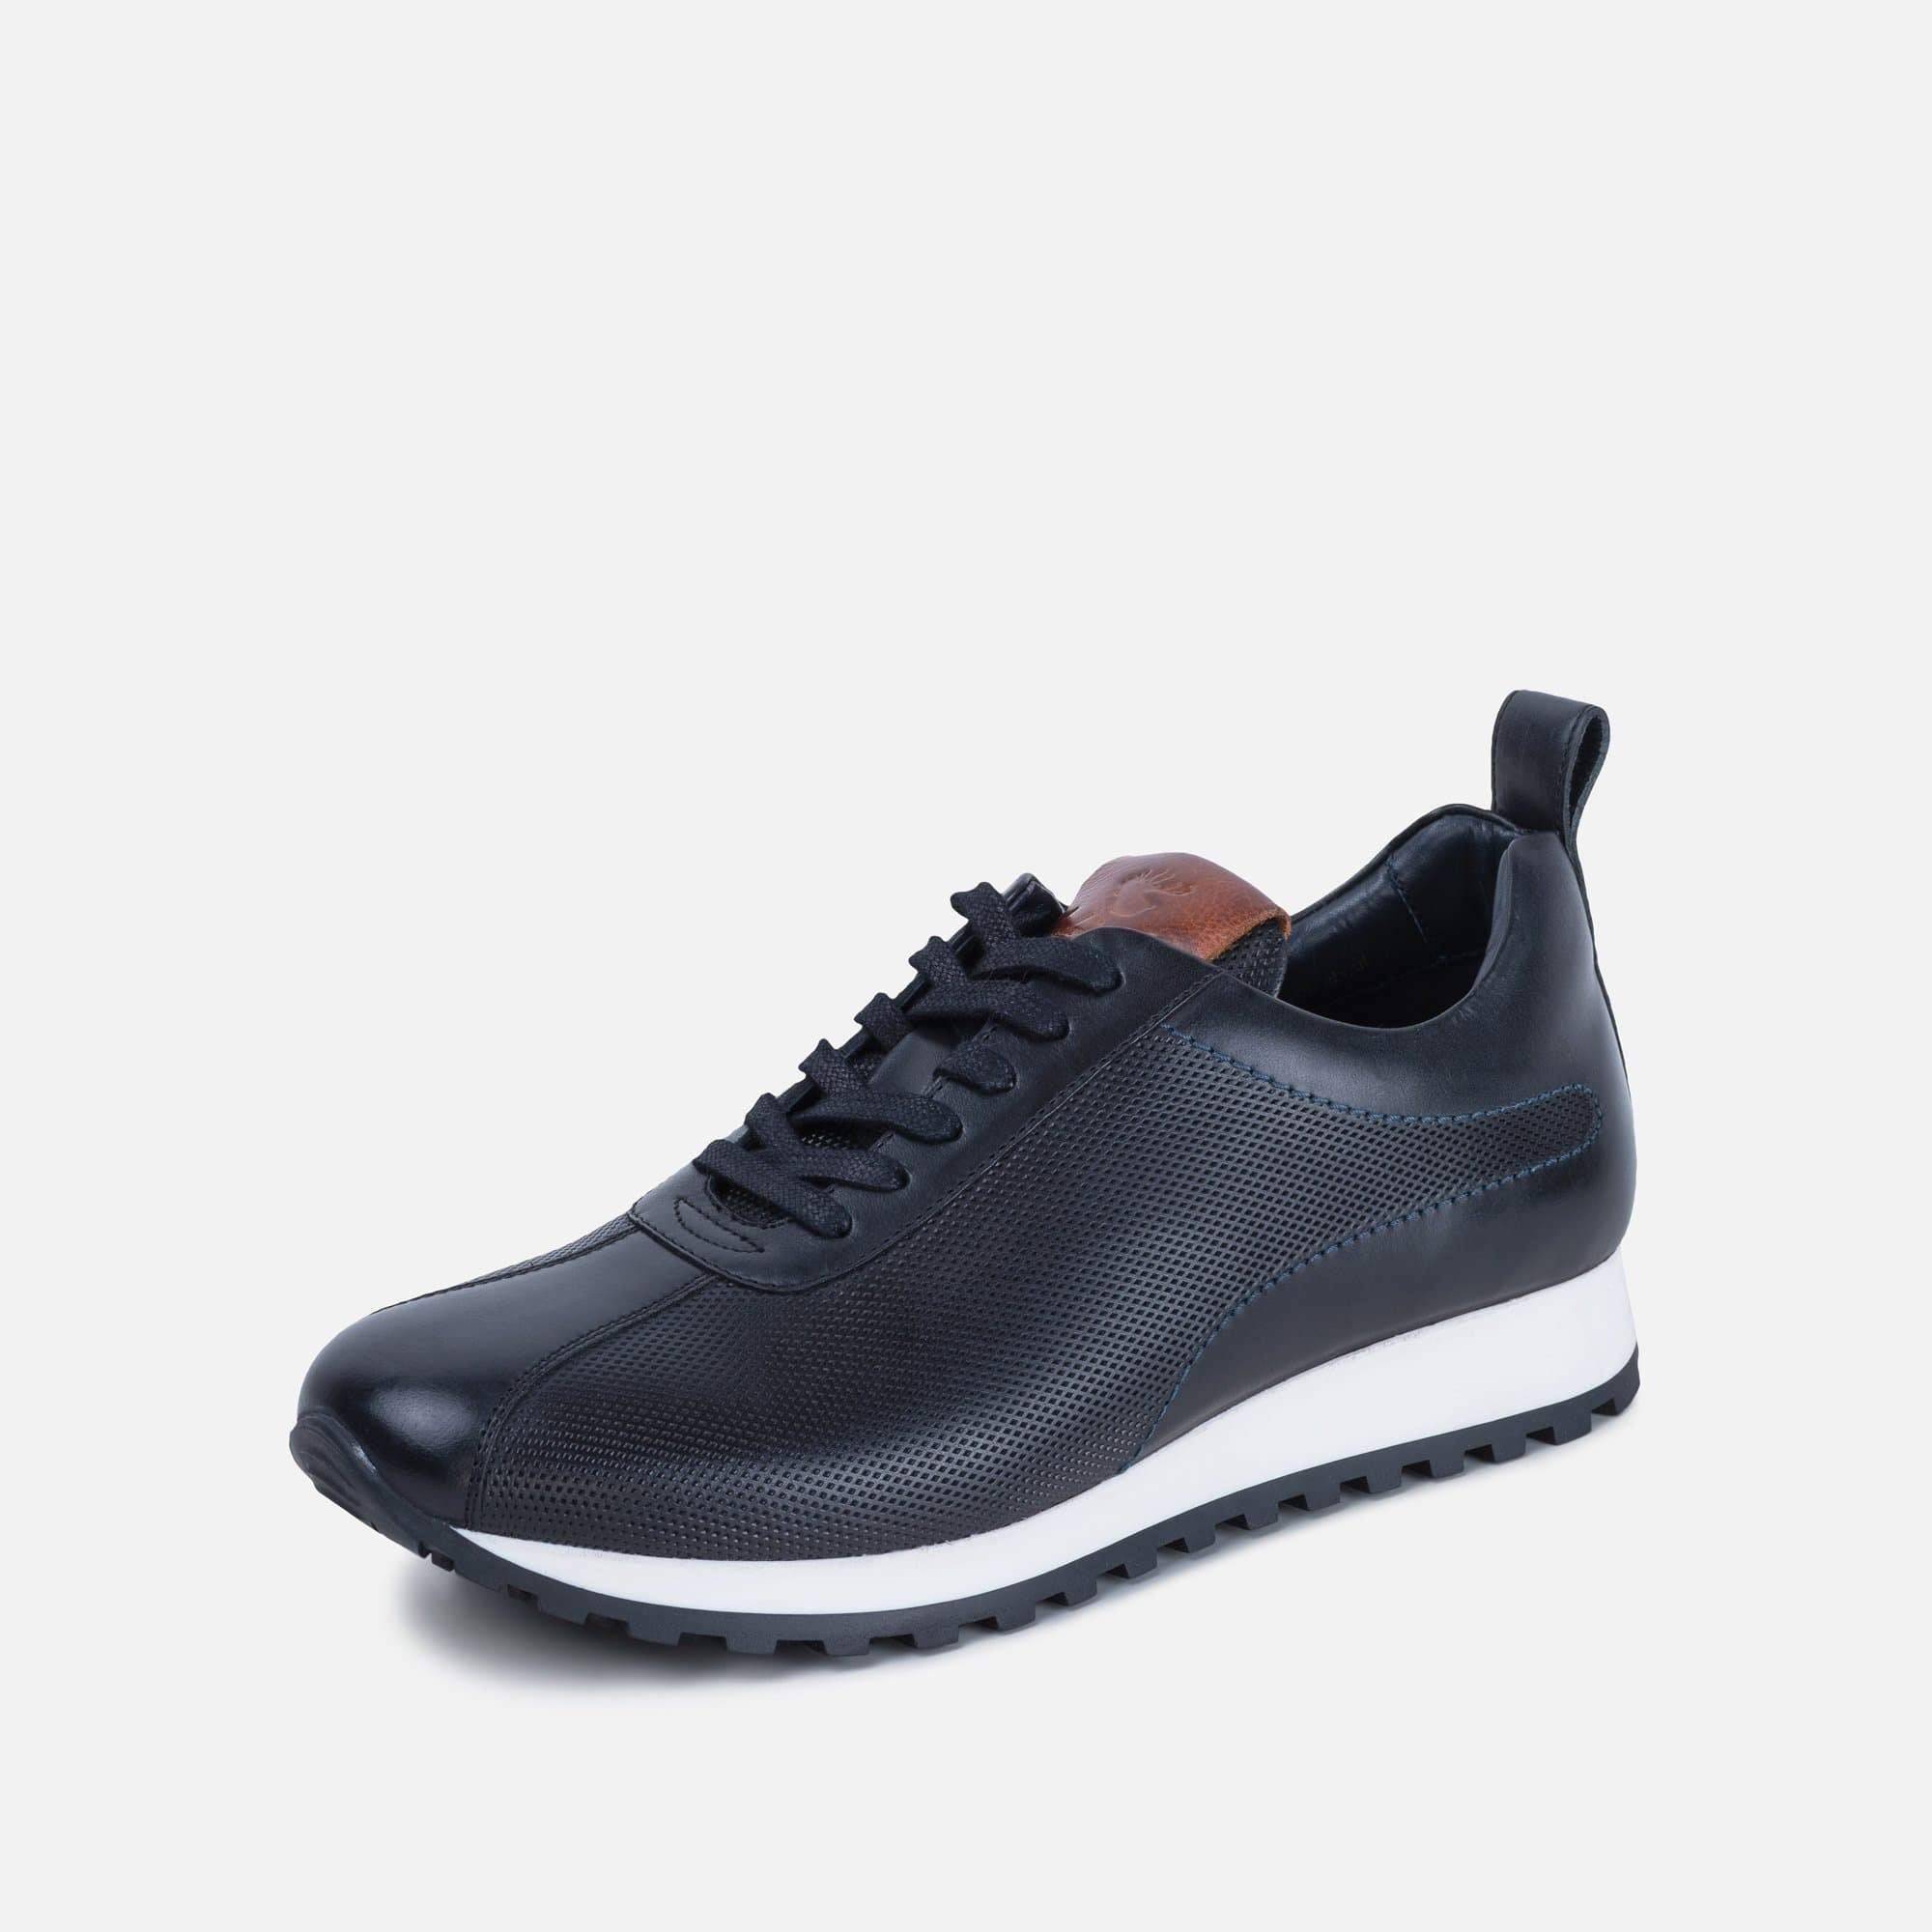 Axel black leather trainer with tan detail and white sole